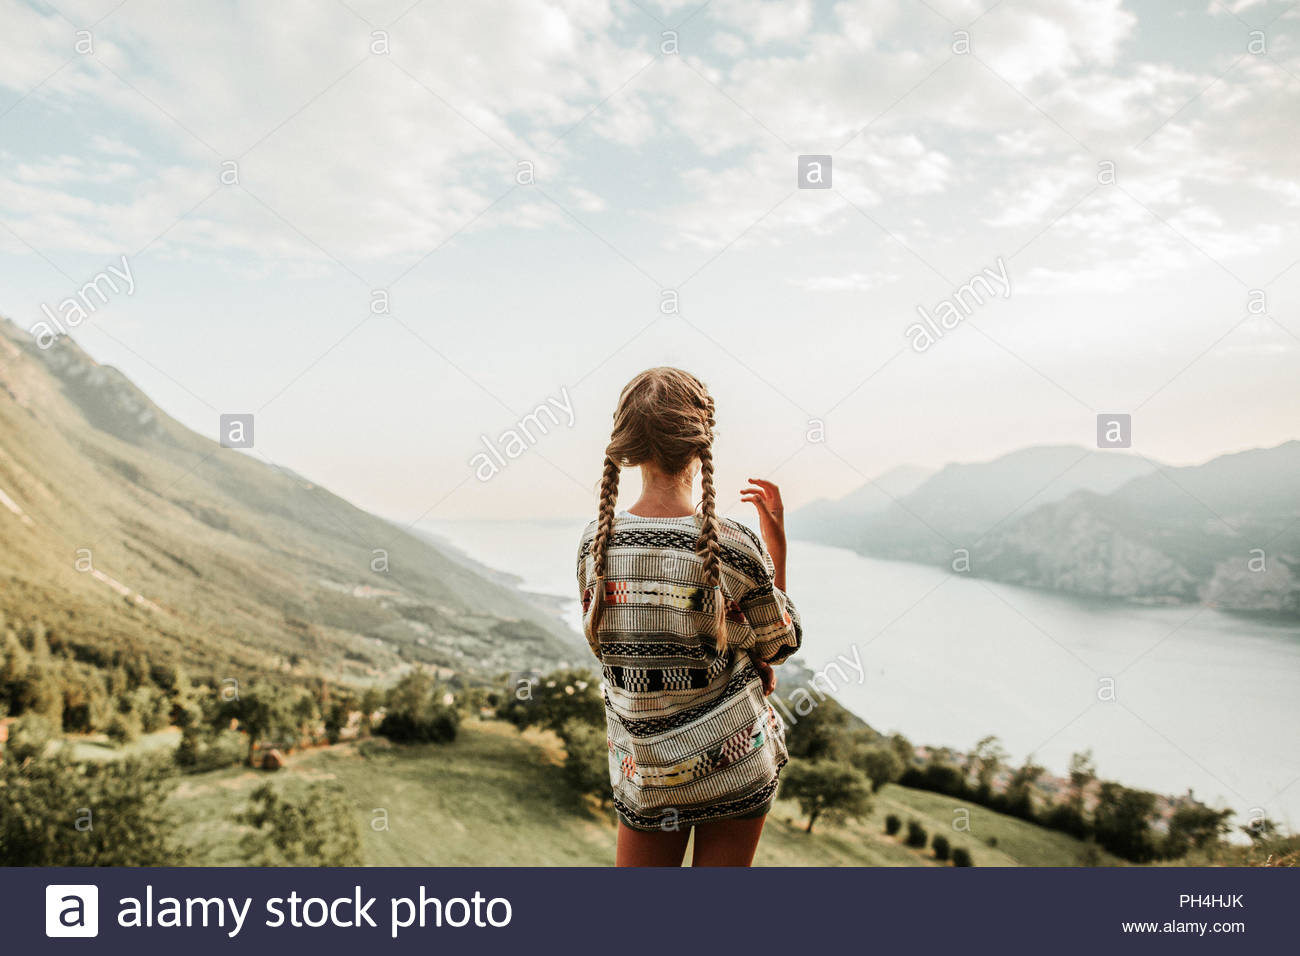 Rear view of a girl with pigtails on a hill at Lake Garda in Italy - Stock Image